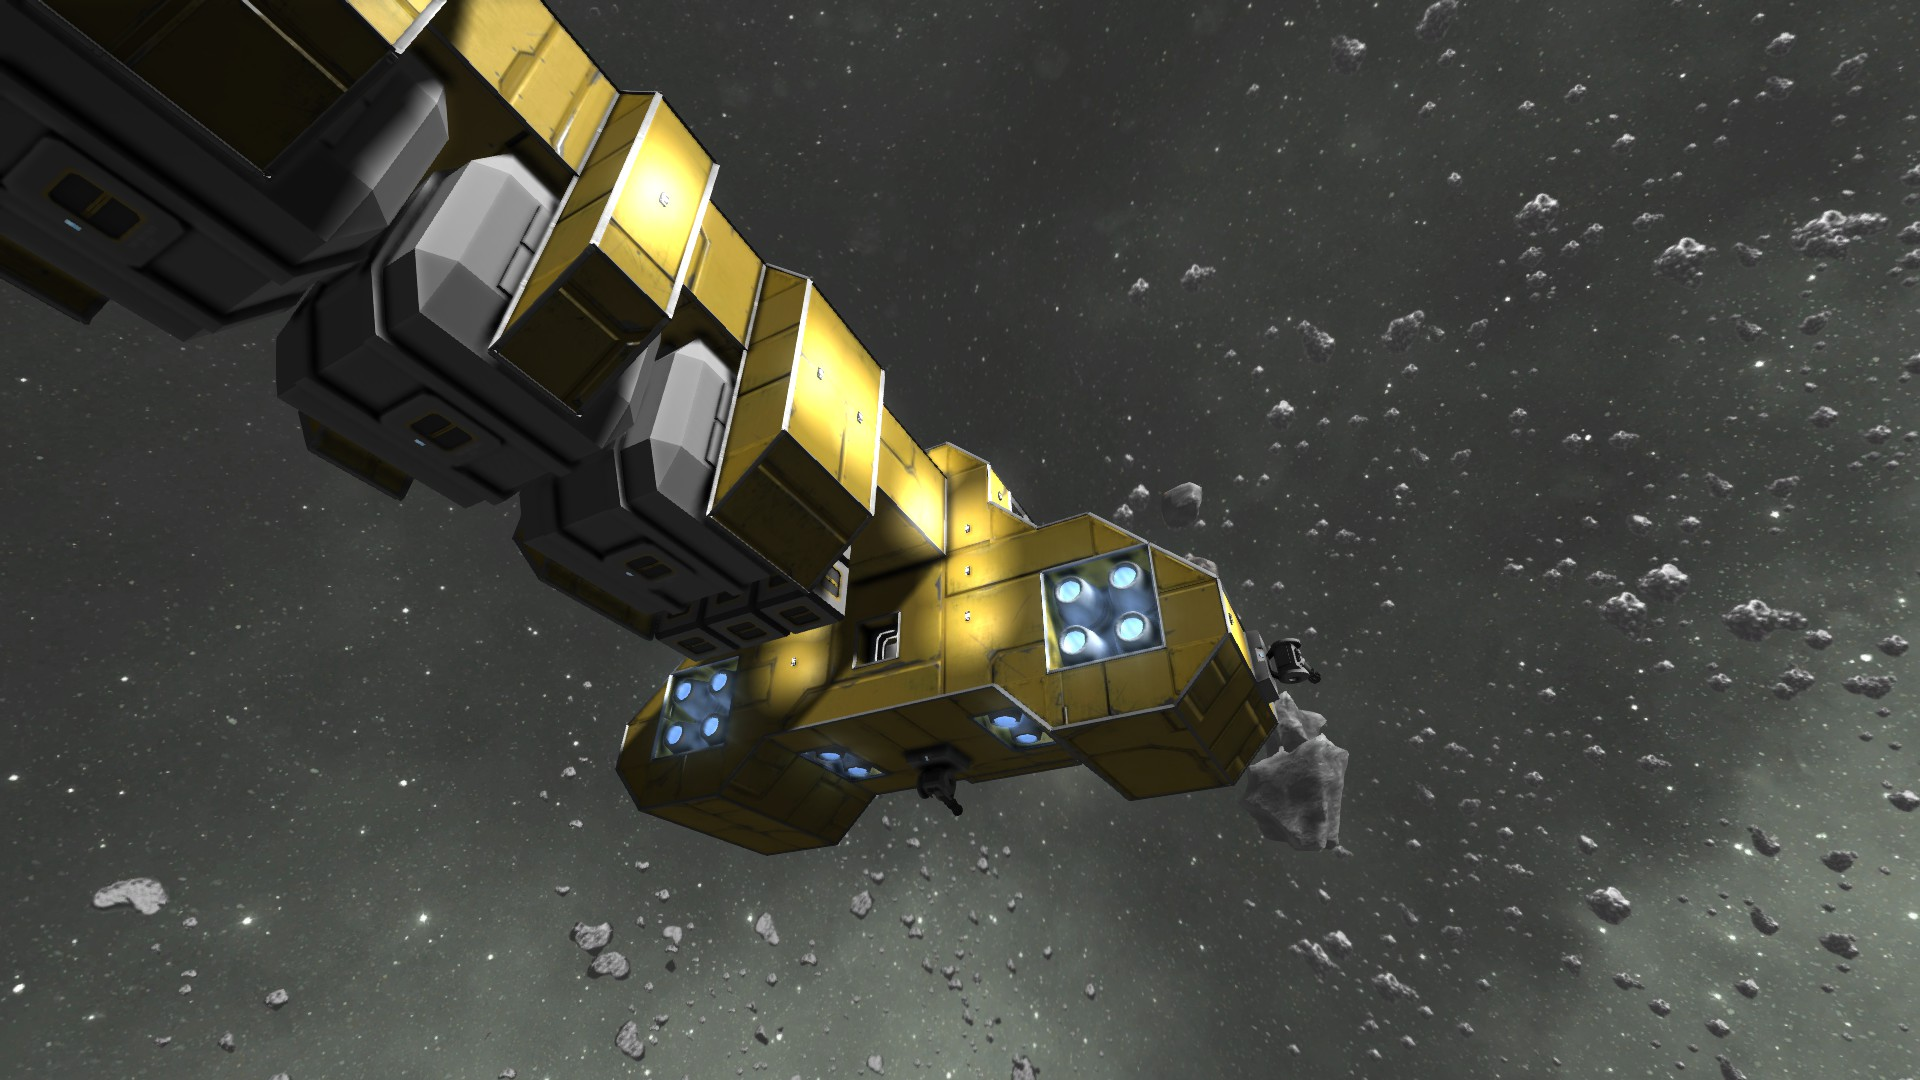 space engineers asteroid ship - photo #33